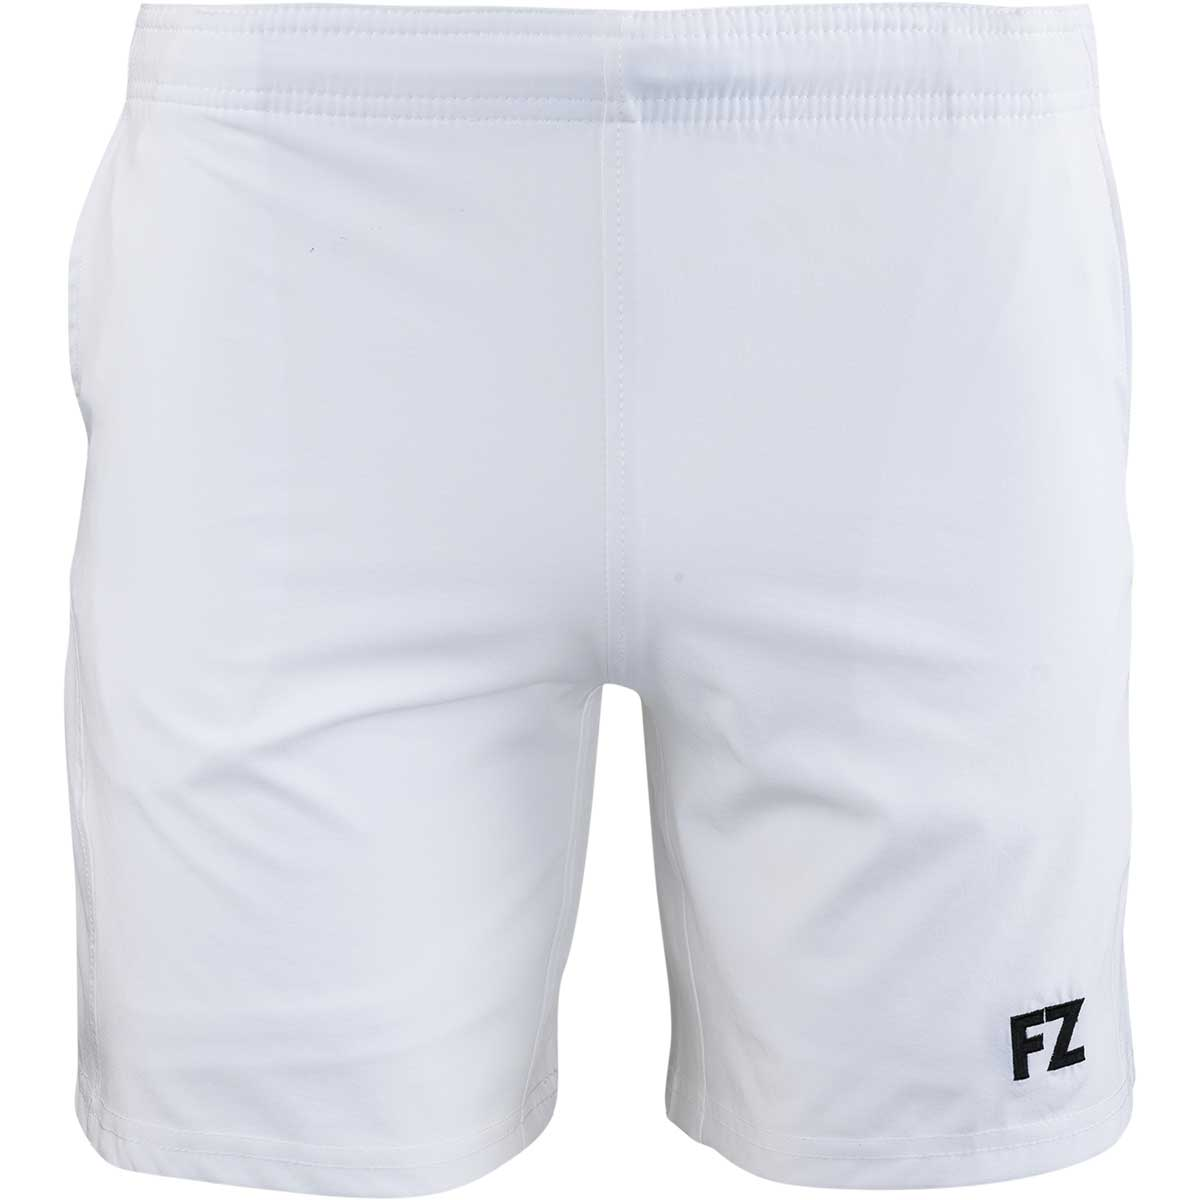 Ajax Jr. Shorts